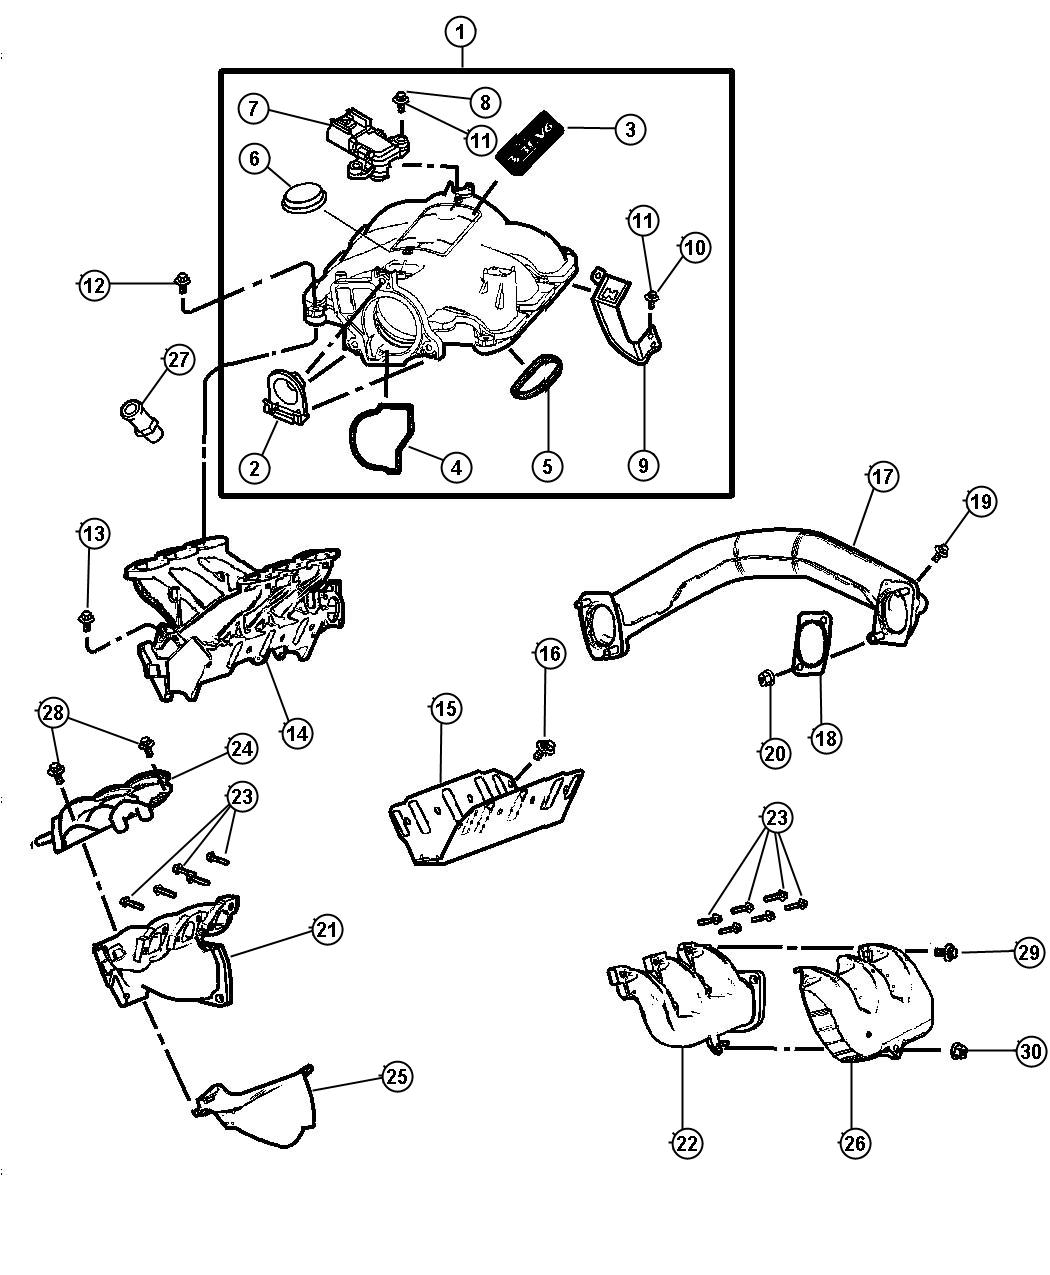 Intake Exhaust Manifold Diagram, Intake, Free Engine Image